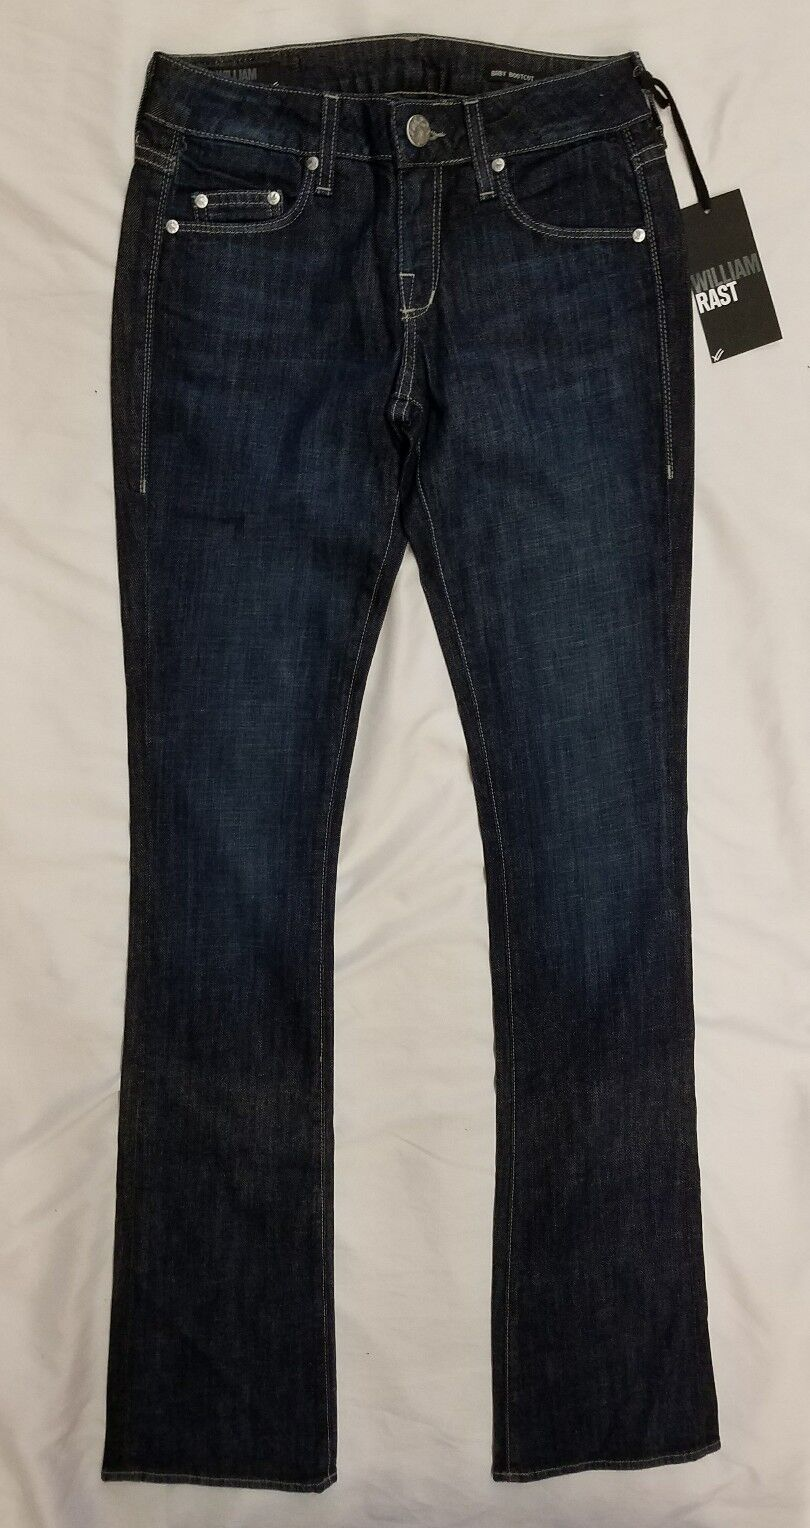 NWTWilliam Rast Women's Blair Baby Bootcut Jeans In bluee Size 29